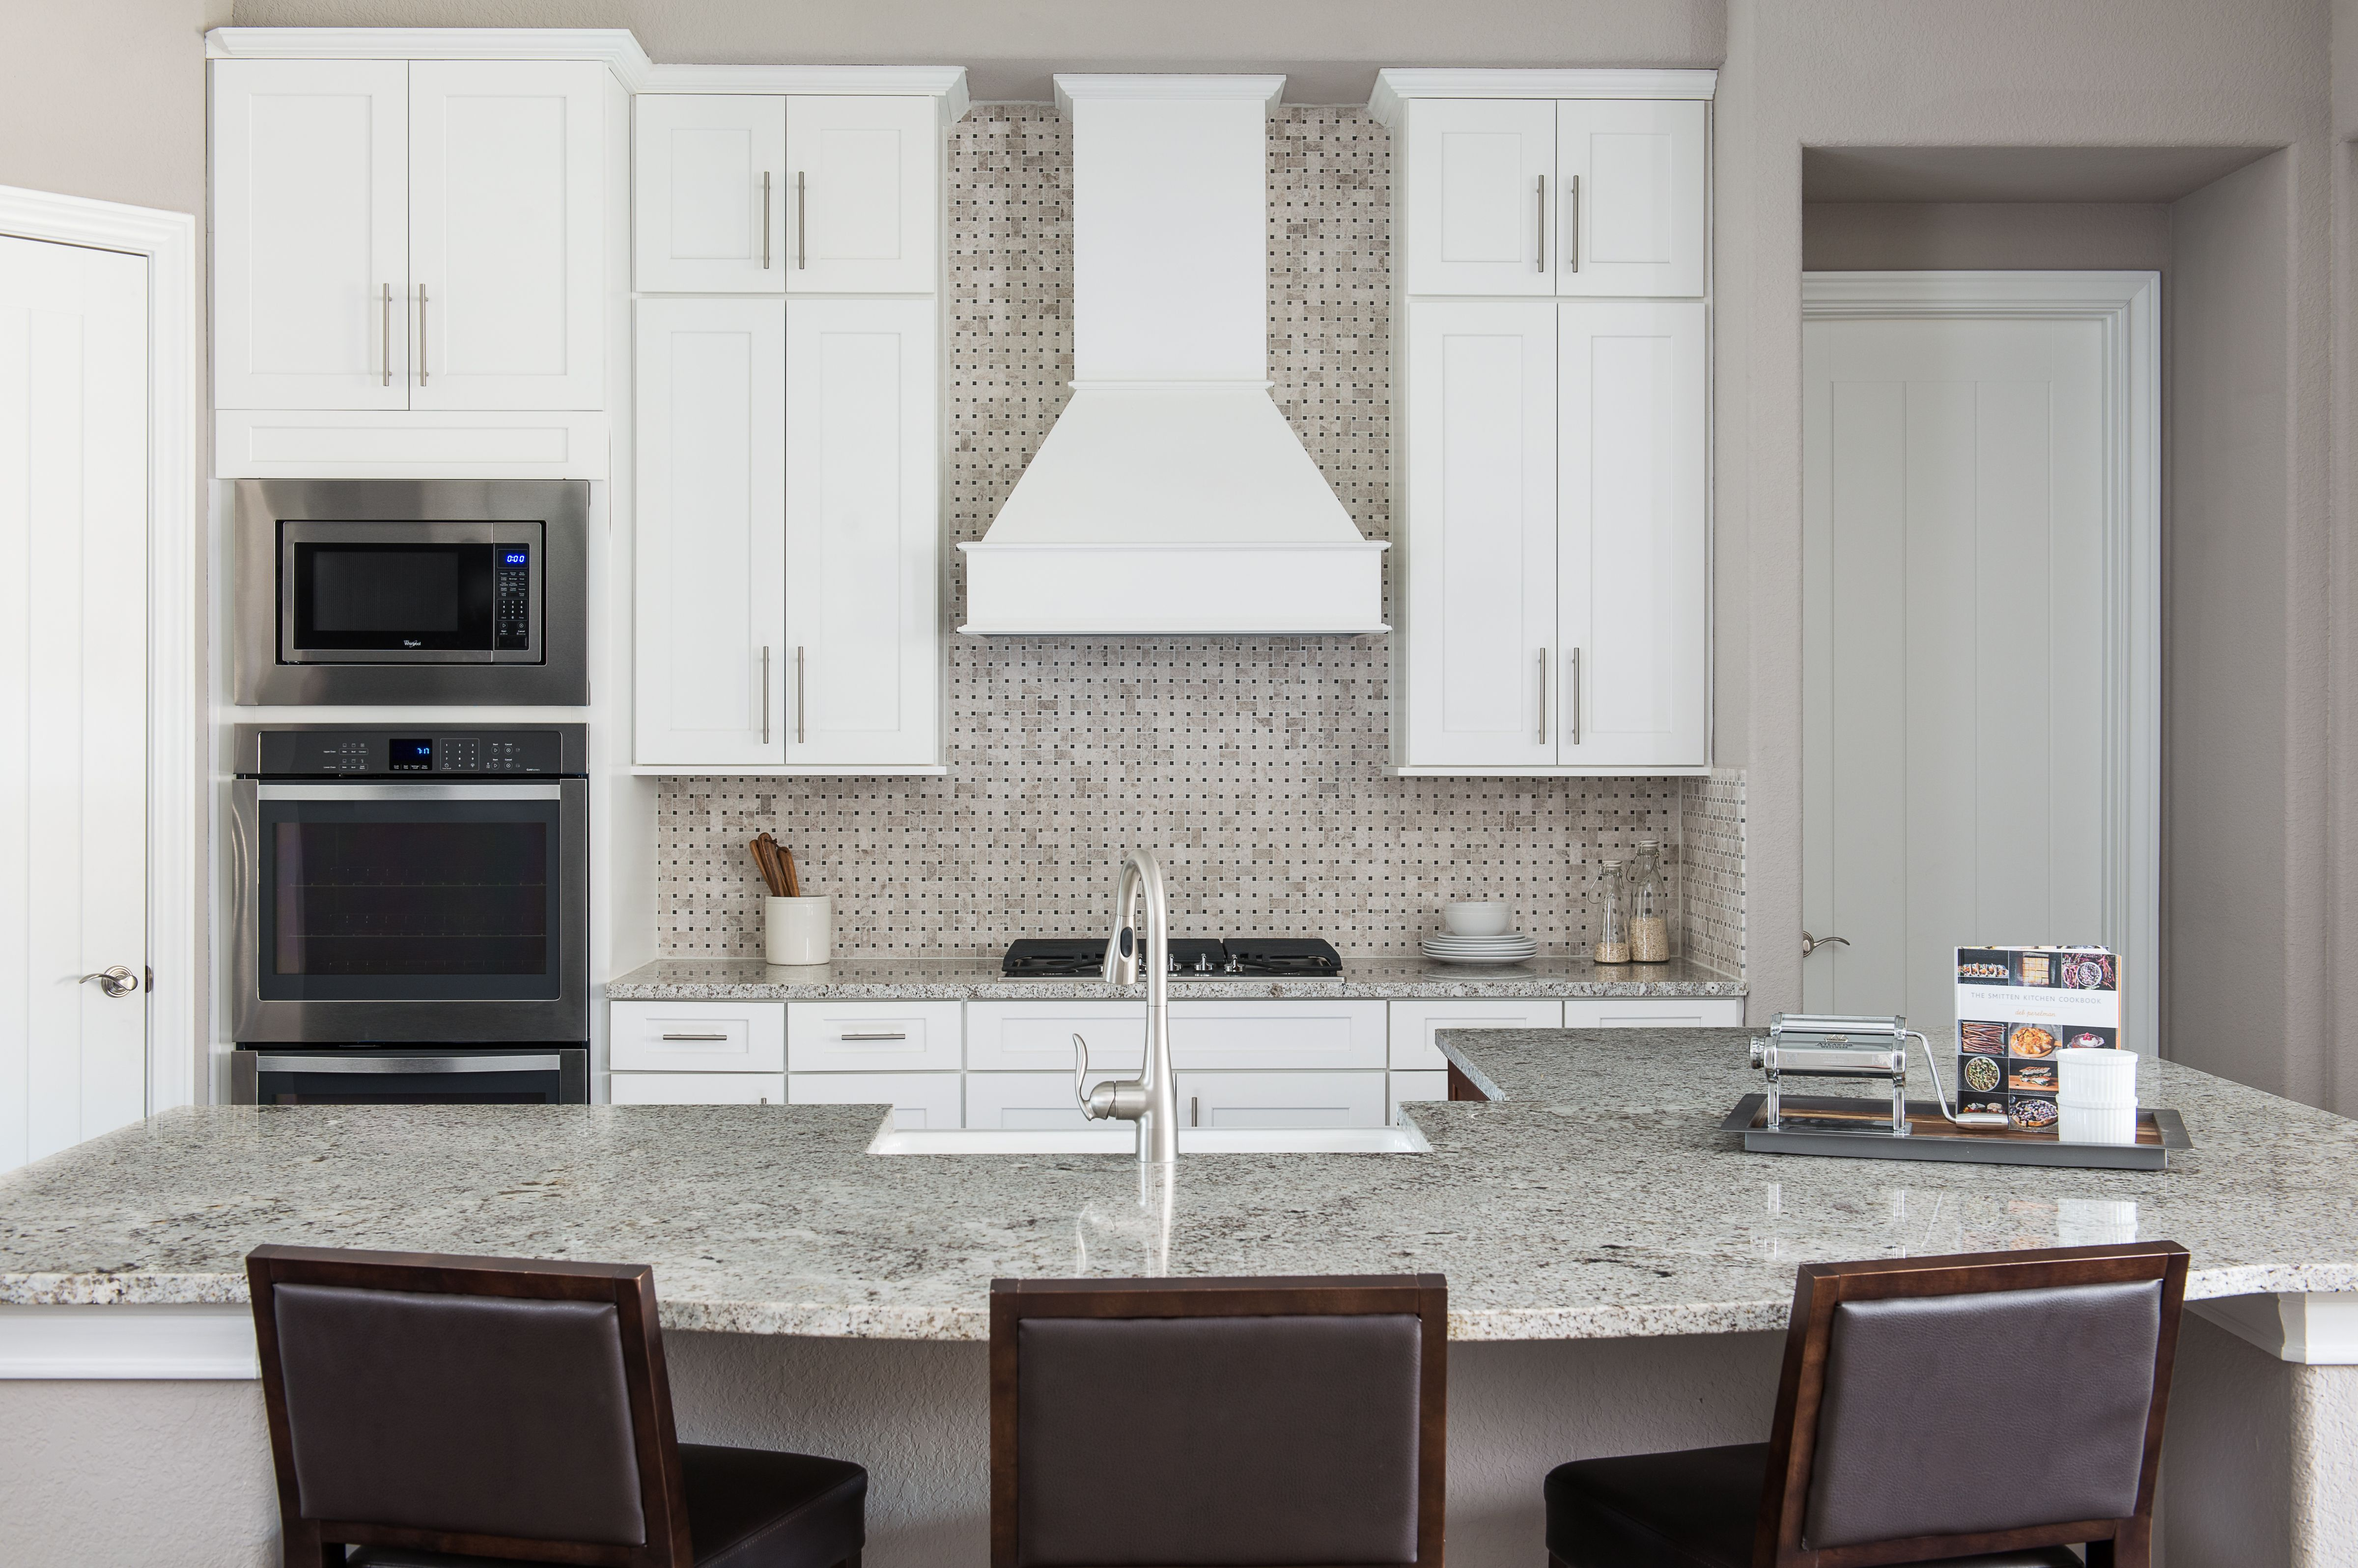 Kitchen featured in the Milam By Ashton Woods in San Antonio, TX